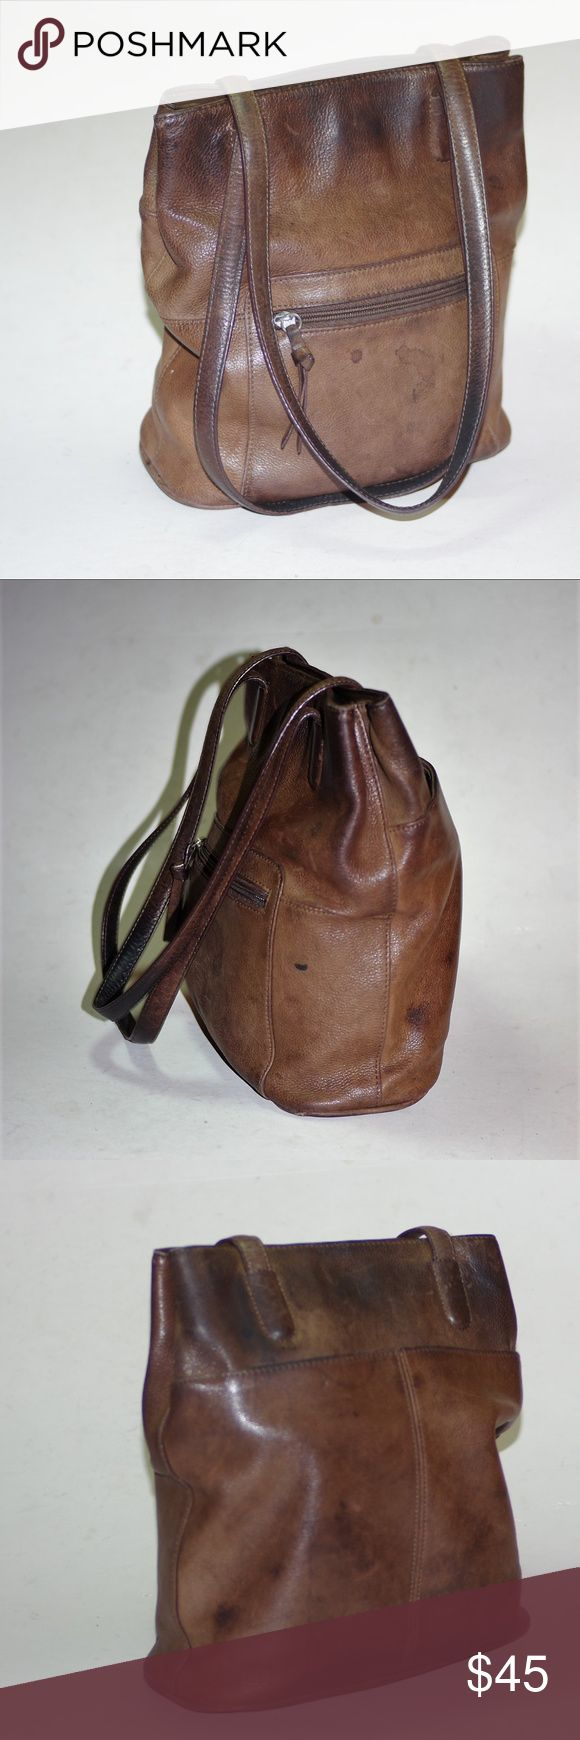 """Leather Purse Bag Hobo Bucket Wilsons Vintage Nice Leather Purse Bag Hobo Bucket Wilsons Vintage Nice By Wilson's Leather Brown Distrssed Look Leather Bag Bucket Hobo Style This bag is deep with main compartments divided by zip pocket which is deep too! zip pull missing on center pocket Zip pocket in liner for coins or 'smalls"""" Satchel Style handles rise 11"""" from top of bag Measures:  9x4.5x10.5 Super bag Has a couple outer blemishes consistent for age unworn Wilsons Leather Bags Hobos"""